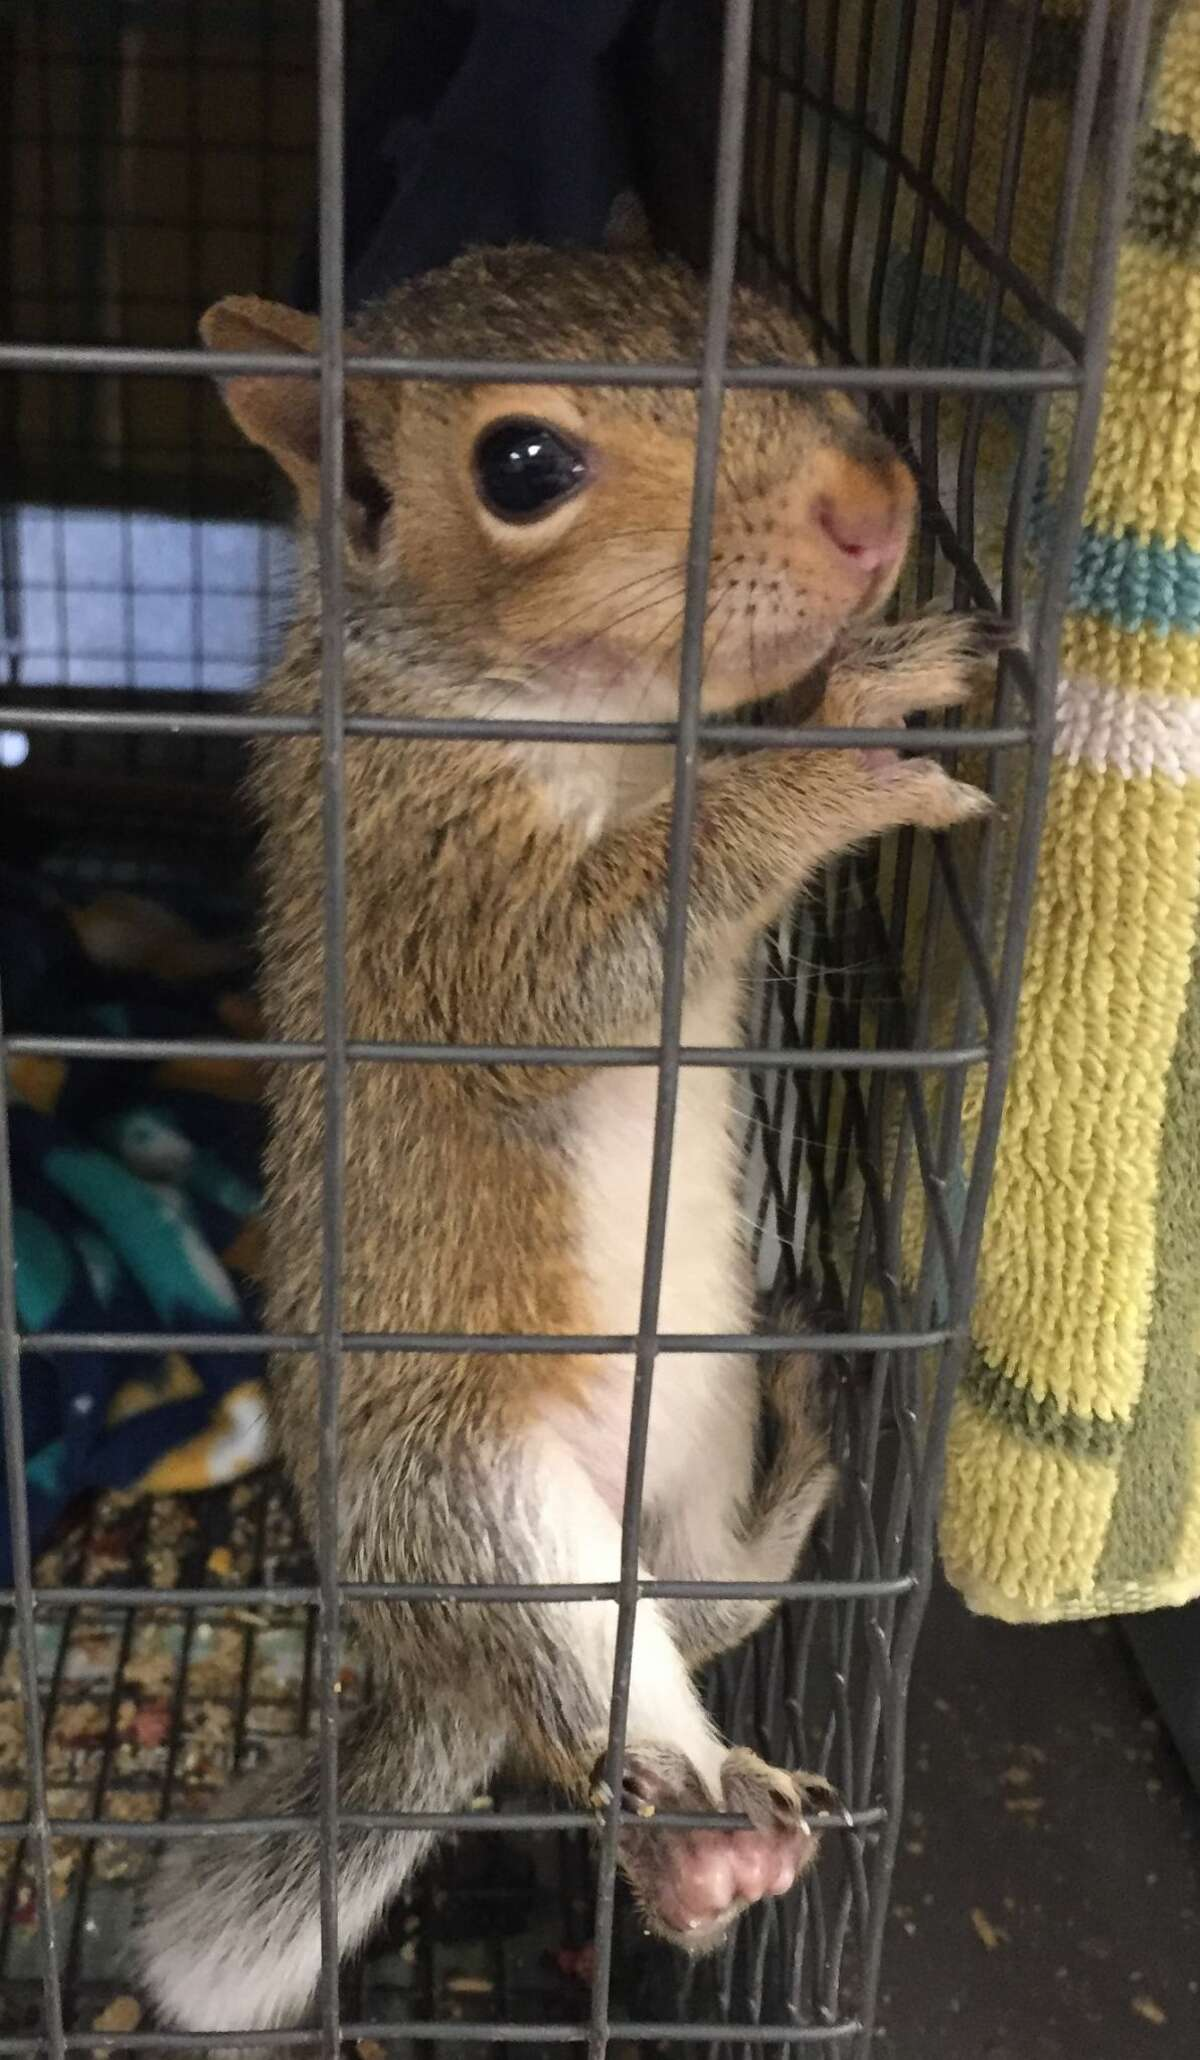 Nearly 100 bushy-tailed babies fell from their arbor nests and landed at the Peninsula Humane Society and SPCA in Burlingame for rehabilitation during the week of Aug. 28.